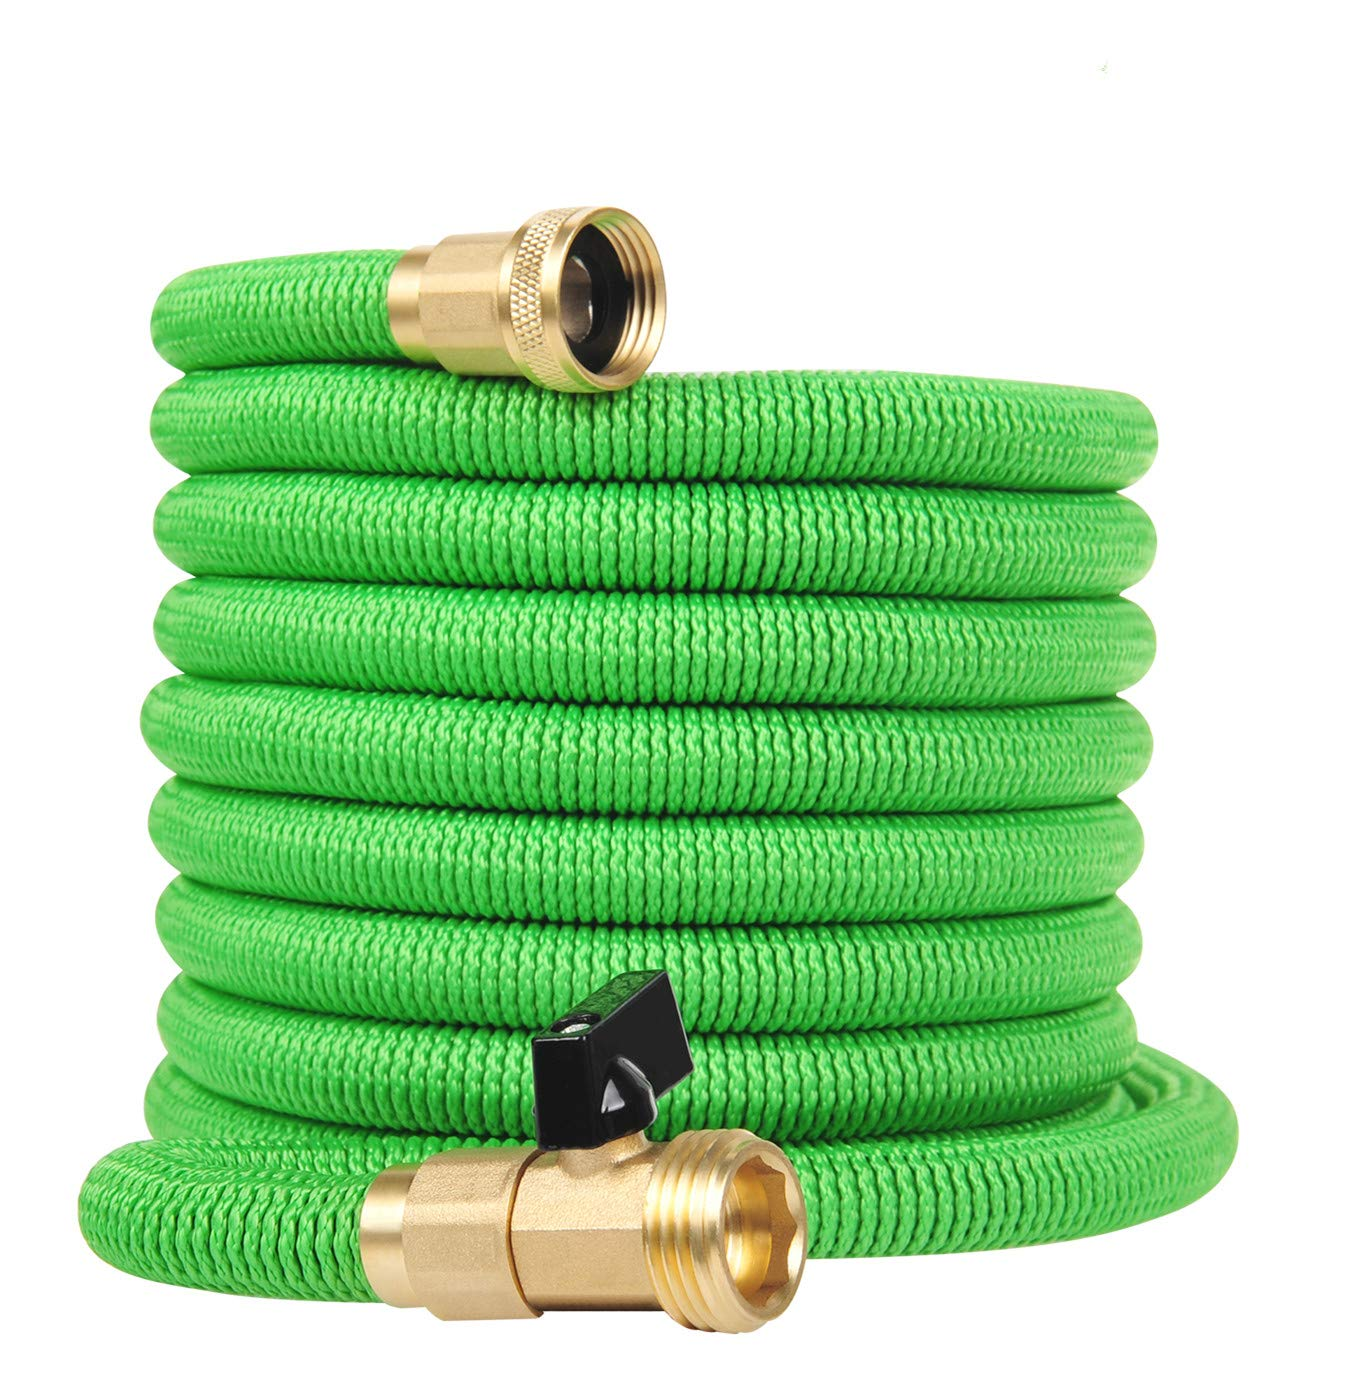 Grelife Garden Hose Expandable Hose 50ft Flexible Water Hose with Strength Polyester and Heavy-Duty Brass Fitting